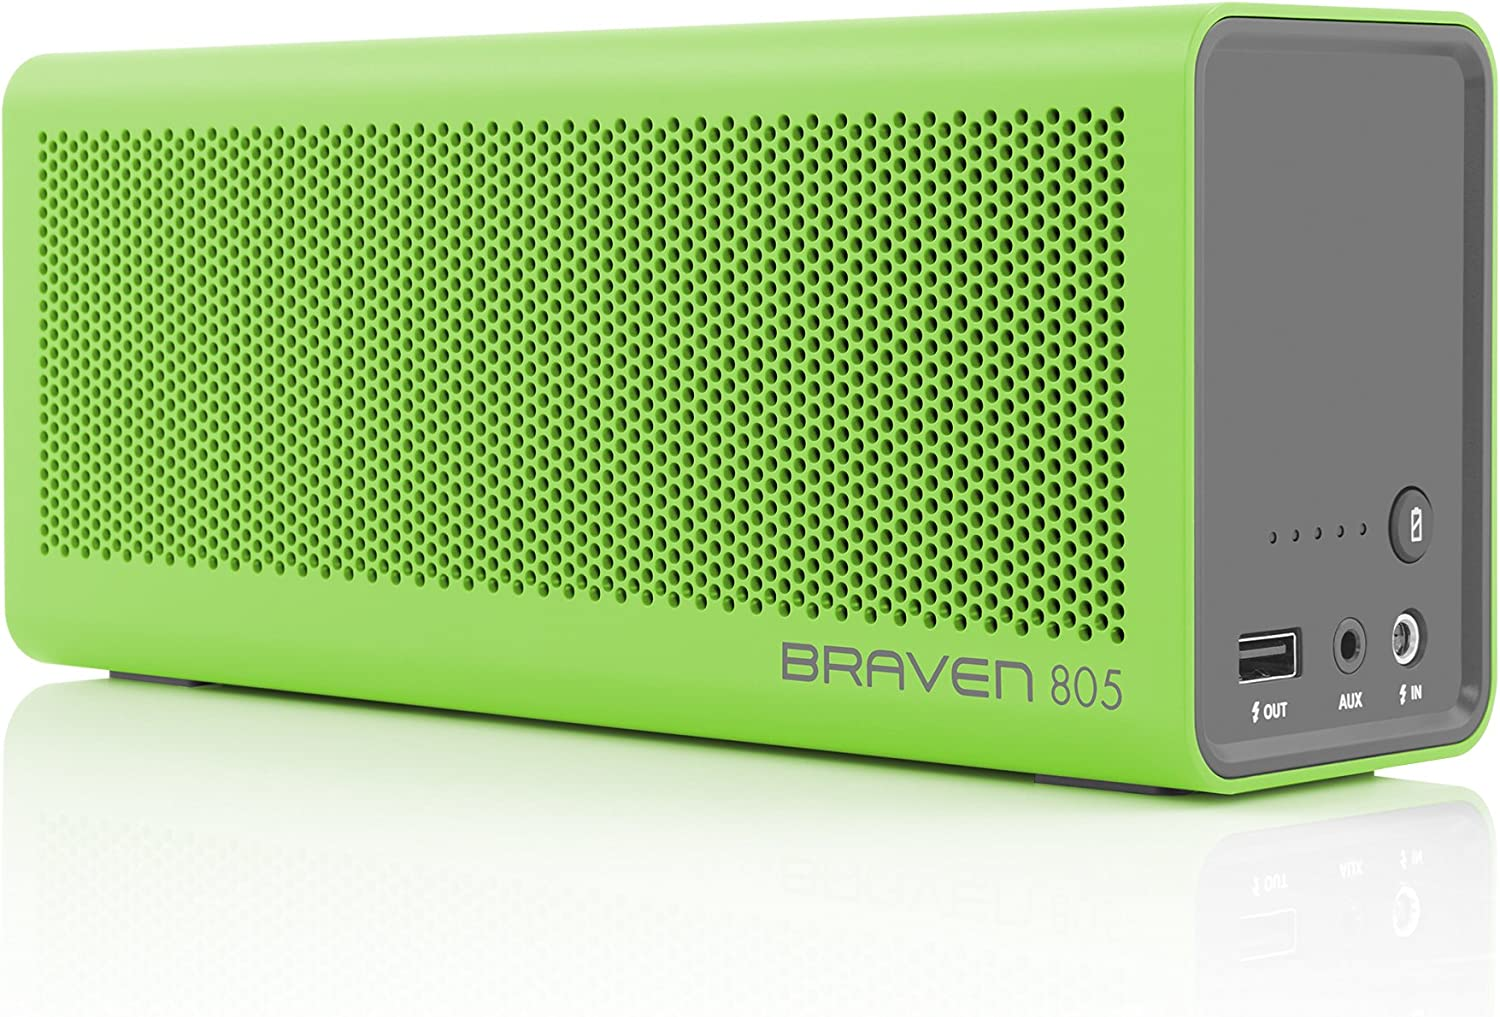 BRAVEN 805 Portable Wireless Bluetooth Speaker [18 Hour Playtime] Built-in 4400 mAh Power Bank Charger - Green/Gray